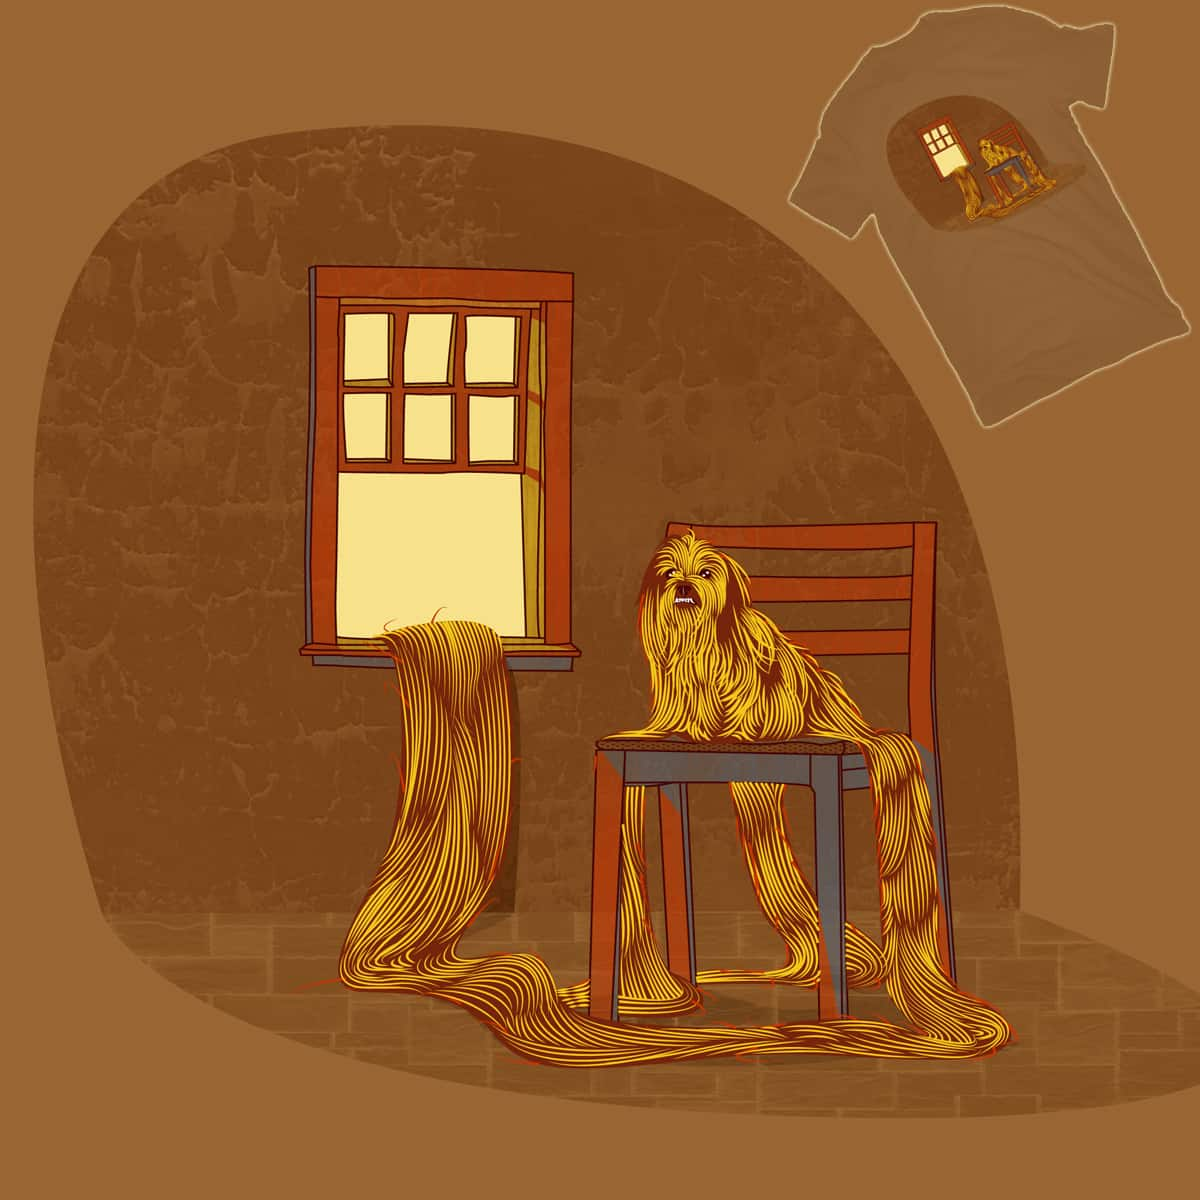 Ruffpunzel by PopeCastro on Threadless